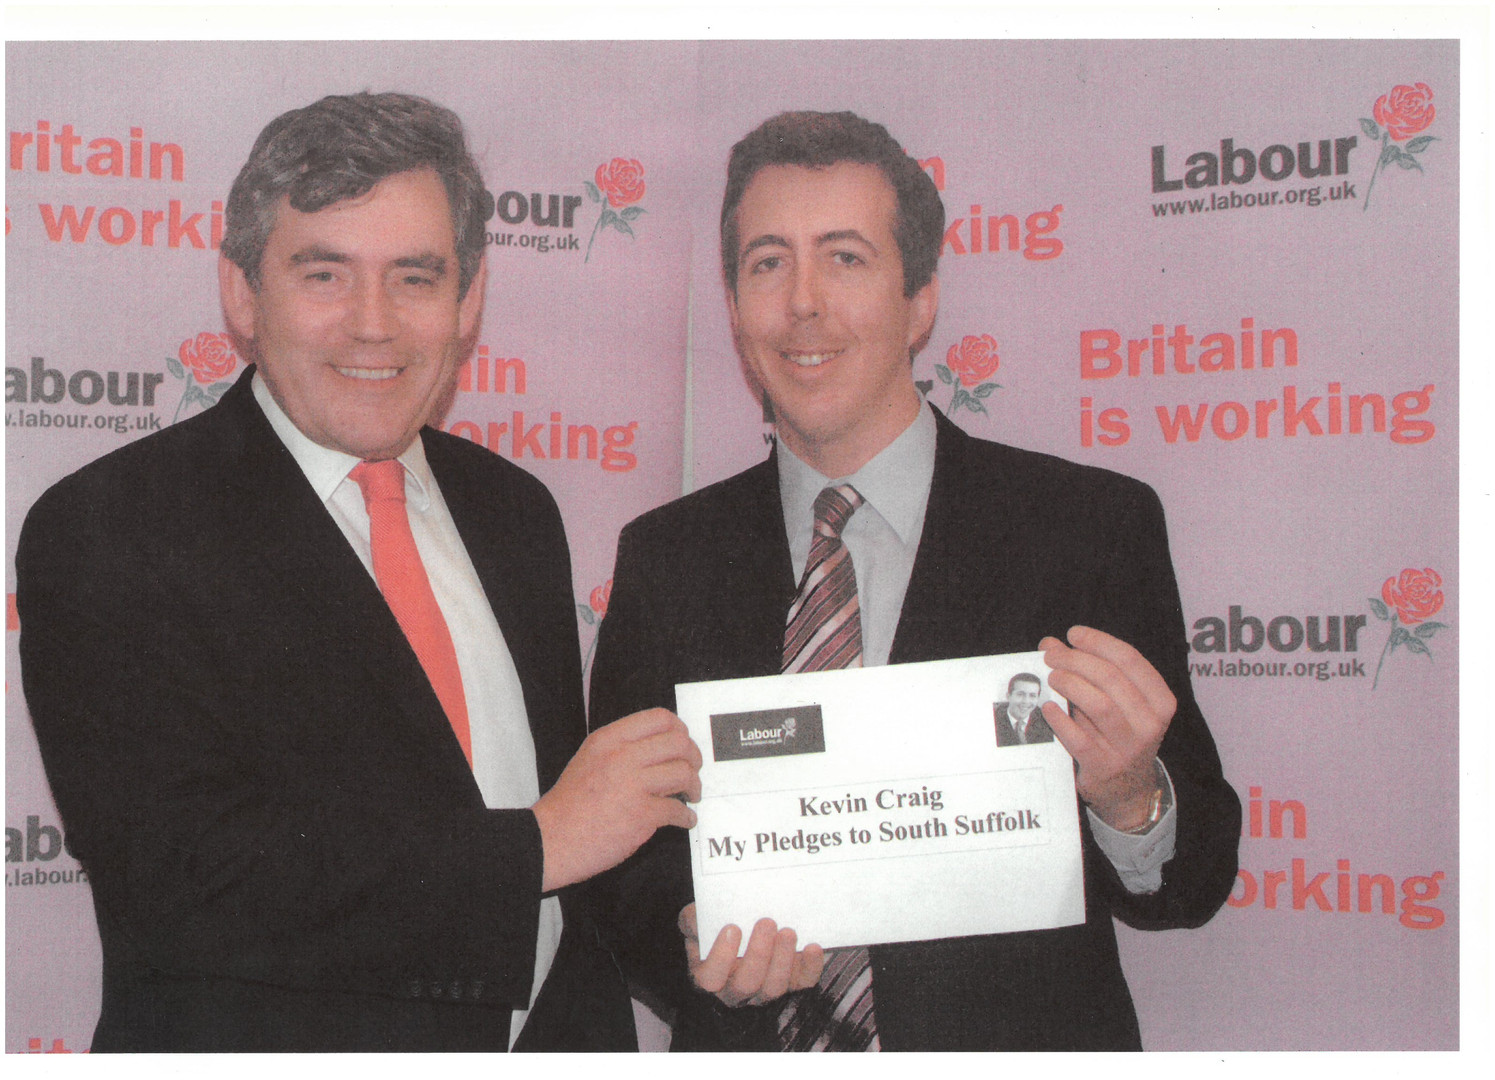 Kevin Craig with Gordon Brown